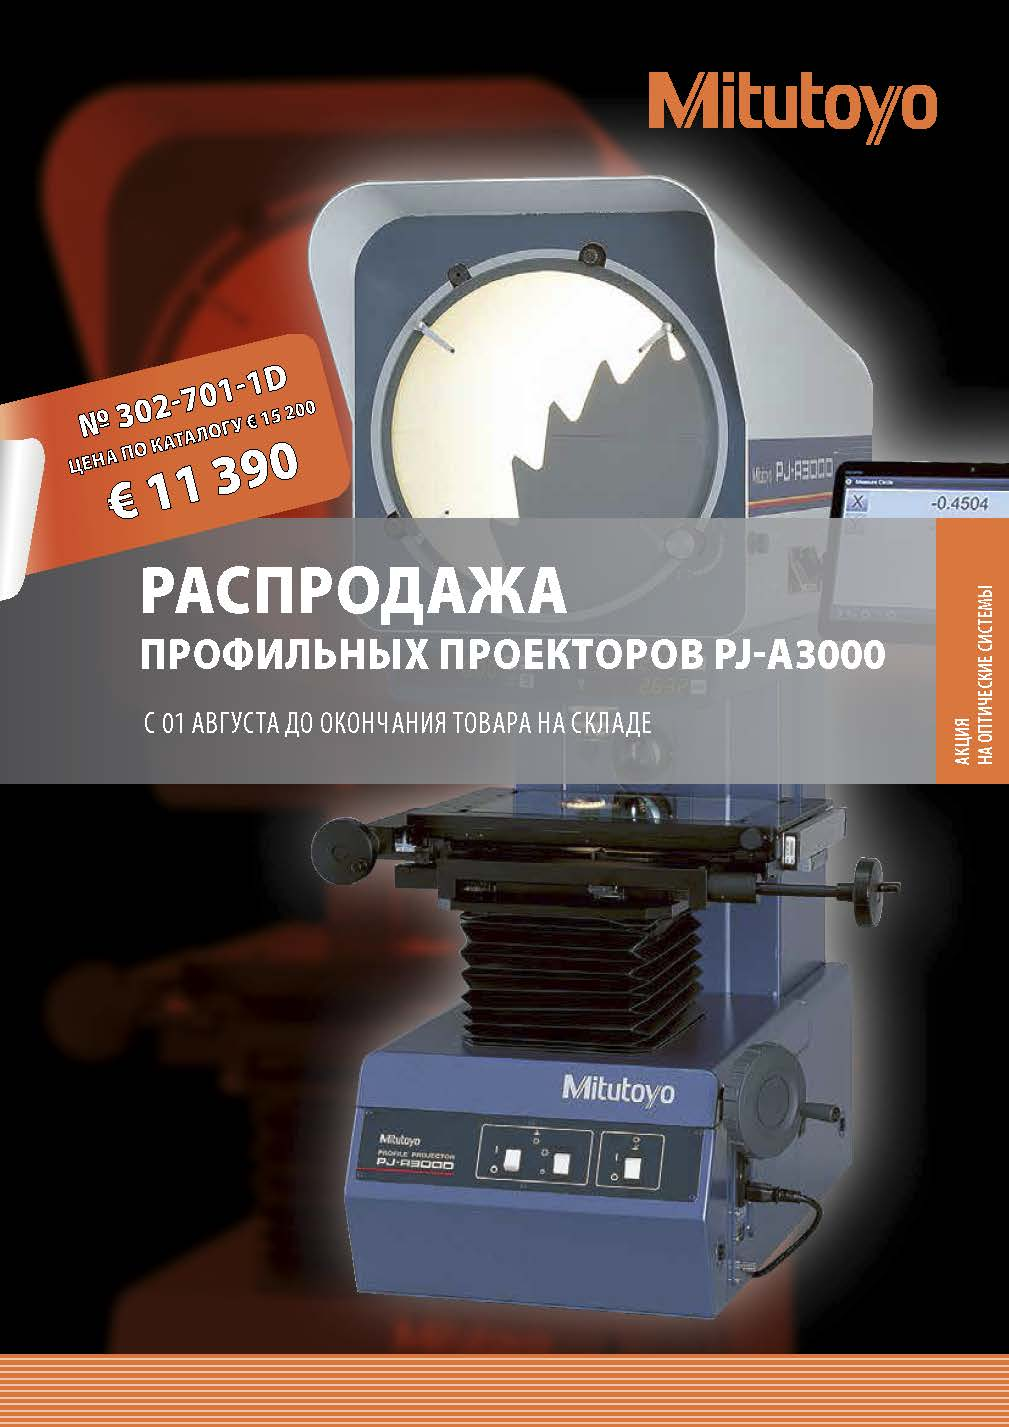 MRU COVER_200727_PJ-A Aktion_RUS.jpg